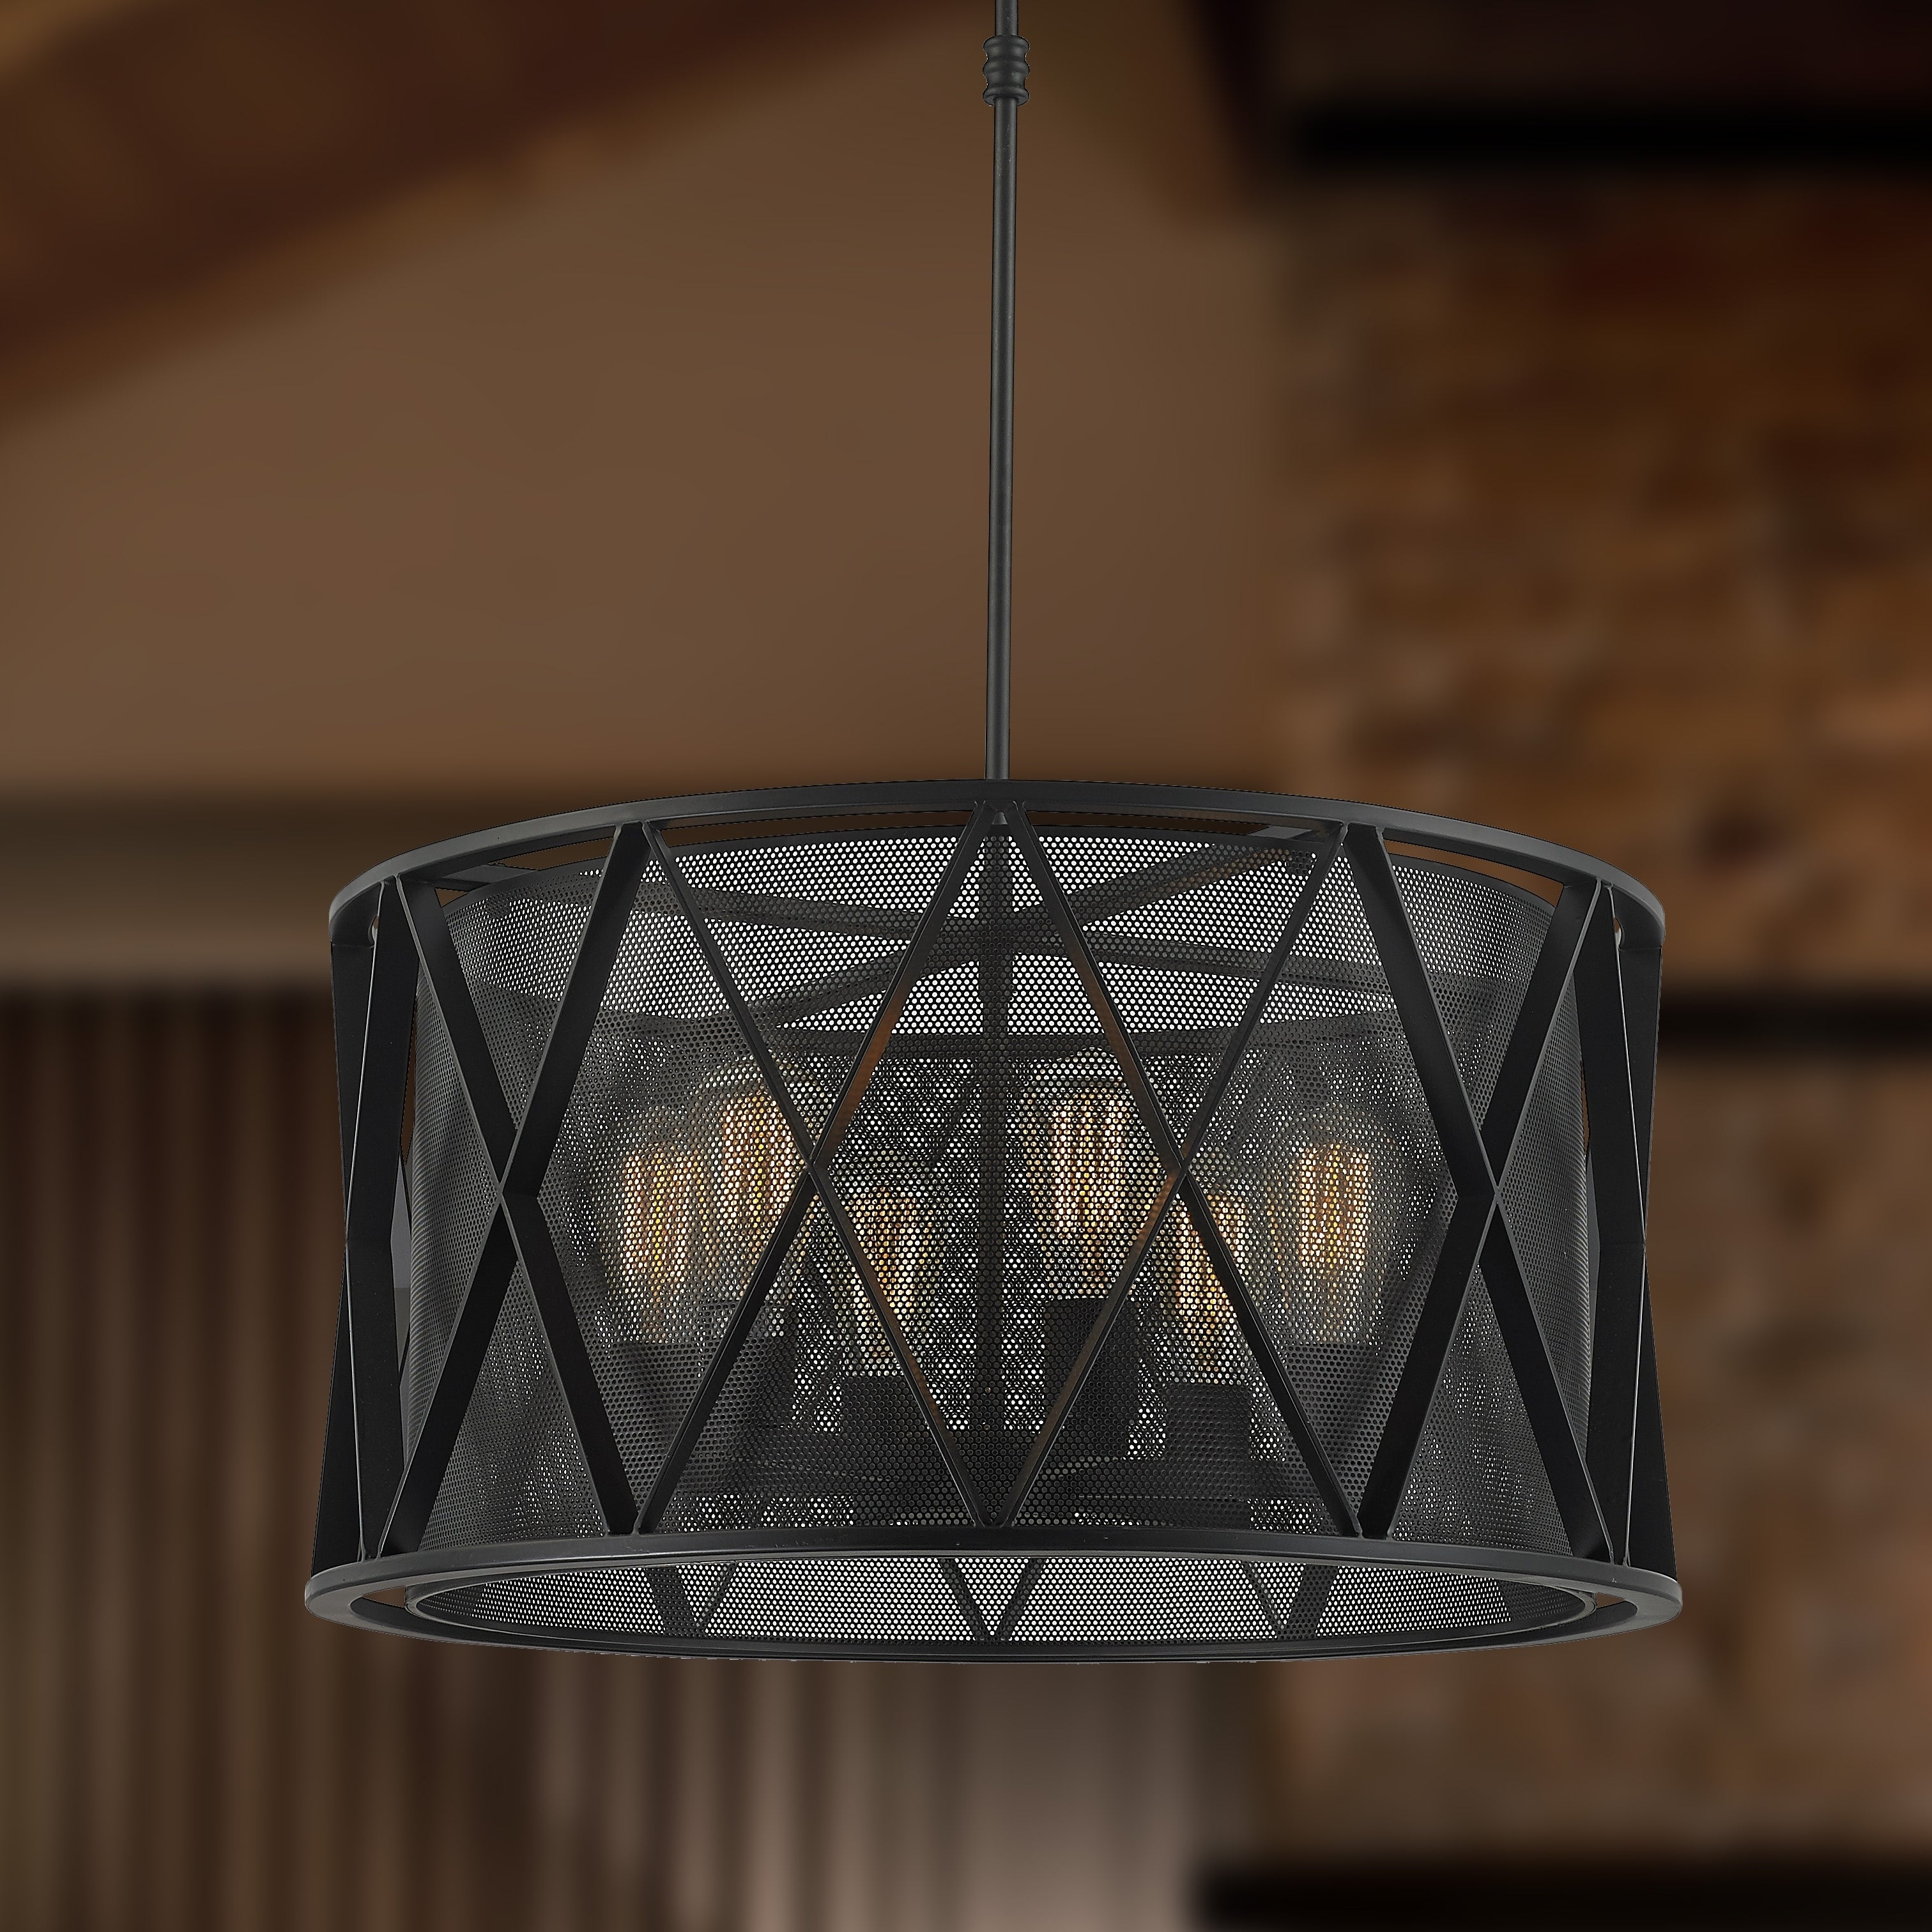 Taiko collection 6 light mesh drum shade pendant light in matte taiko collection 6 light mesh drum shade pendant light in matte black finish d24 h12 free shipping today overstock 24249692 aloadofball Choice Image